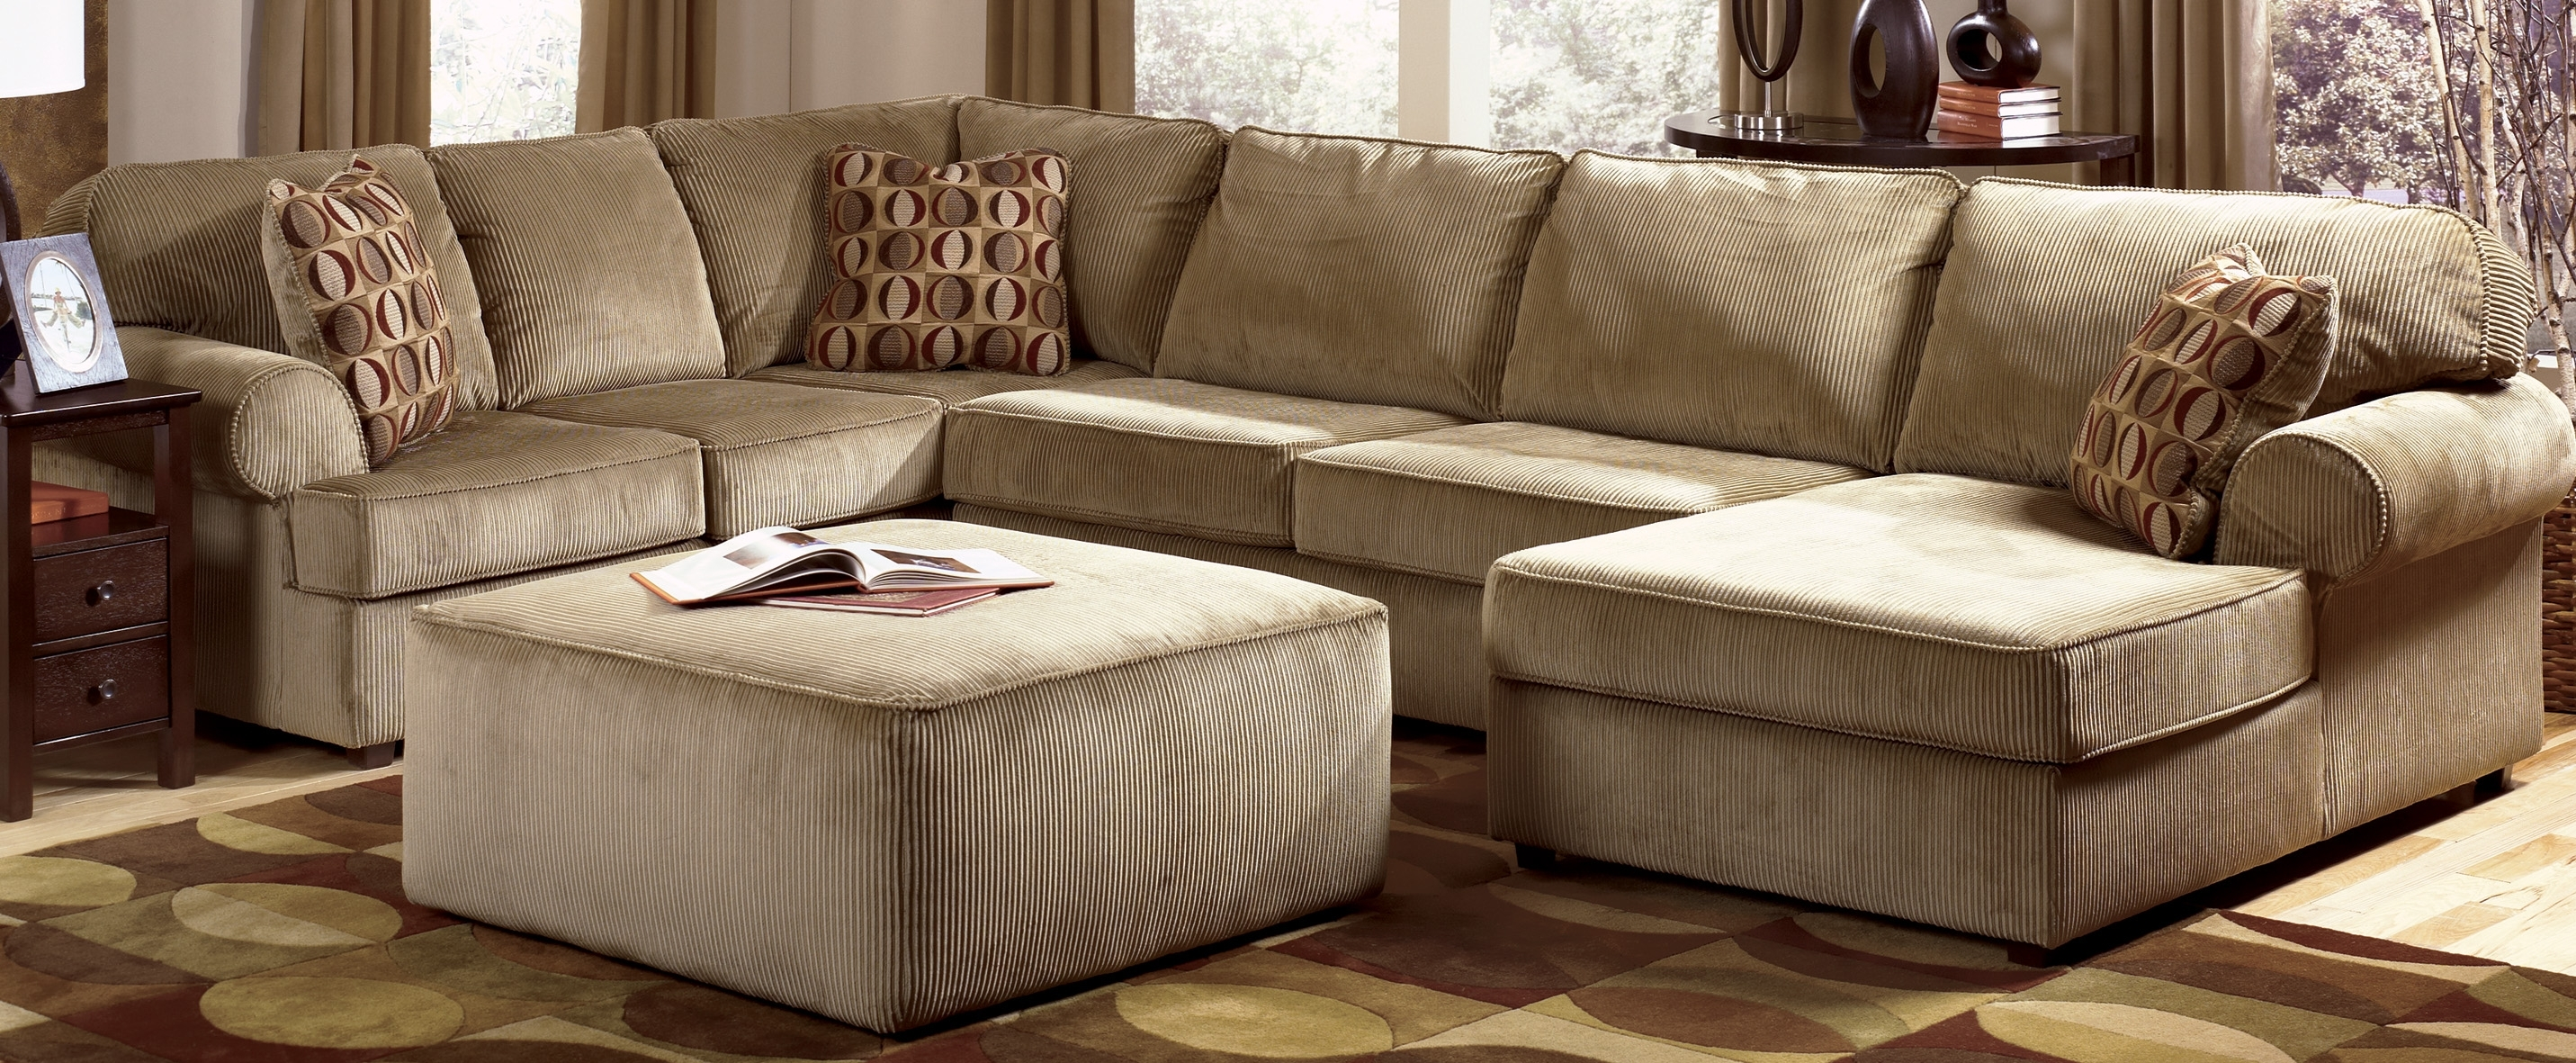 Sectional Sofas On Sale | Aifaresidency With Regard To Raleigh Nc Sectional Sofas (View 3 of 10)